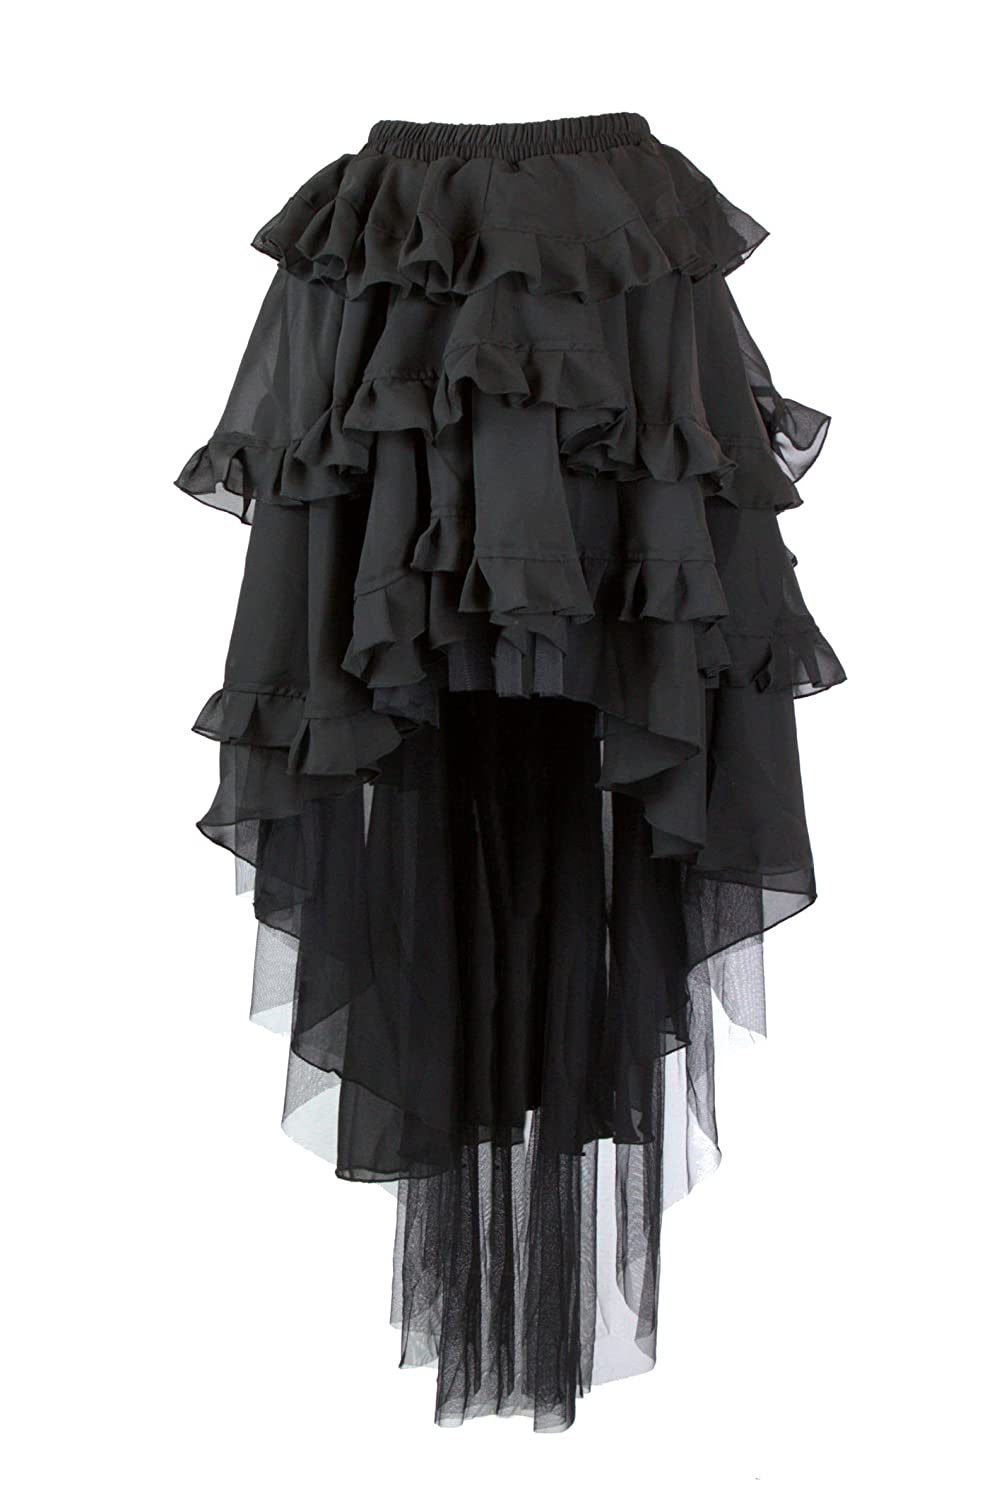 Steampunk Dresses and Costumes Black Steampunk Ophelie Skirt $86.99 AT vintagedancer.com